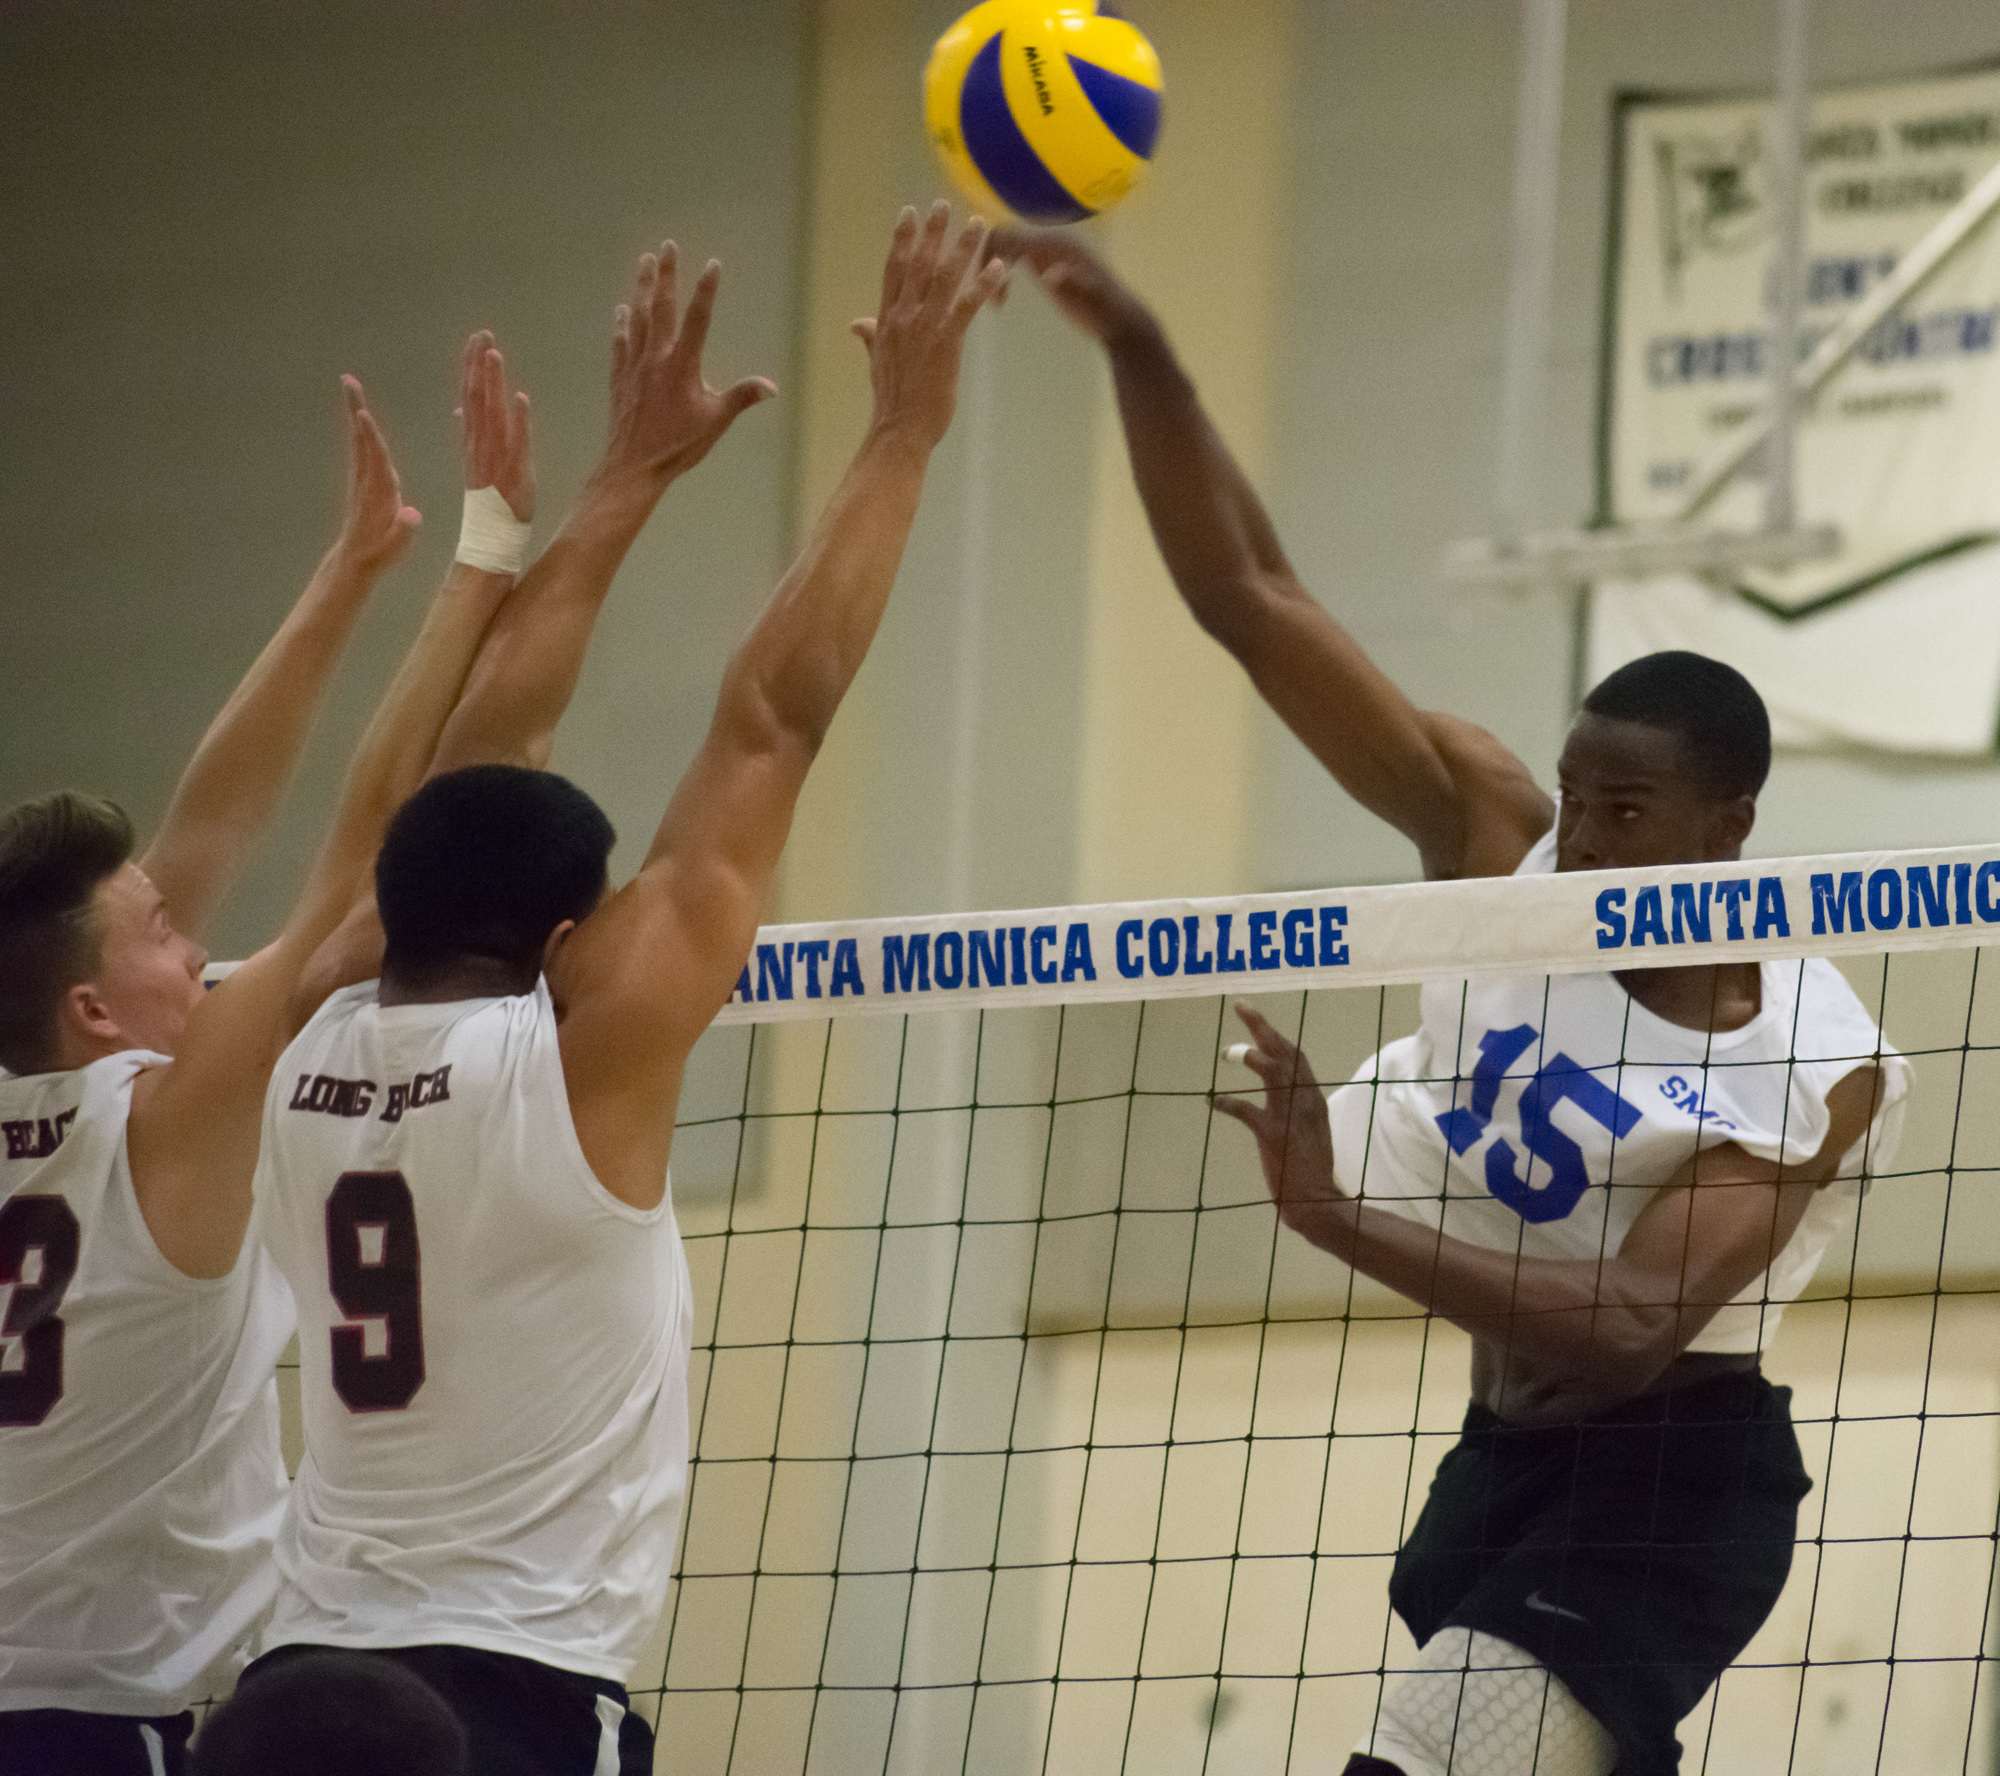 Santa Monica Corsairs sophomore and middle hitter Vecas Lewin (#15) prepares to spike the ball against the Long Beach City College Vikings during their final home game of the season on Wednesday, April 12, 2018 in the Santa Monica College gym at Santa Monica, California. The game ended in a 3-1 loss for the Corsairs, giving them a 7-7 overall rating for the season with one game left. (Ethan Lauren/Corsair Photo)